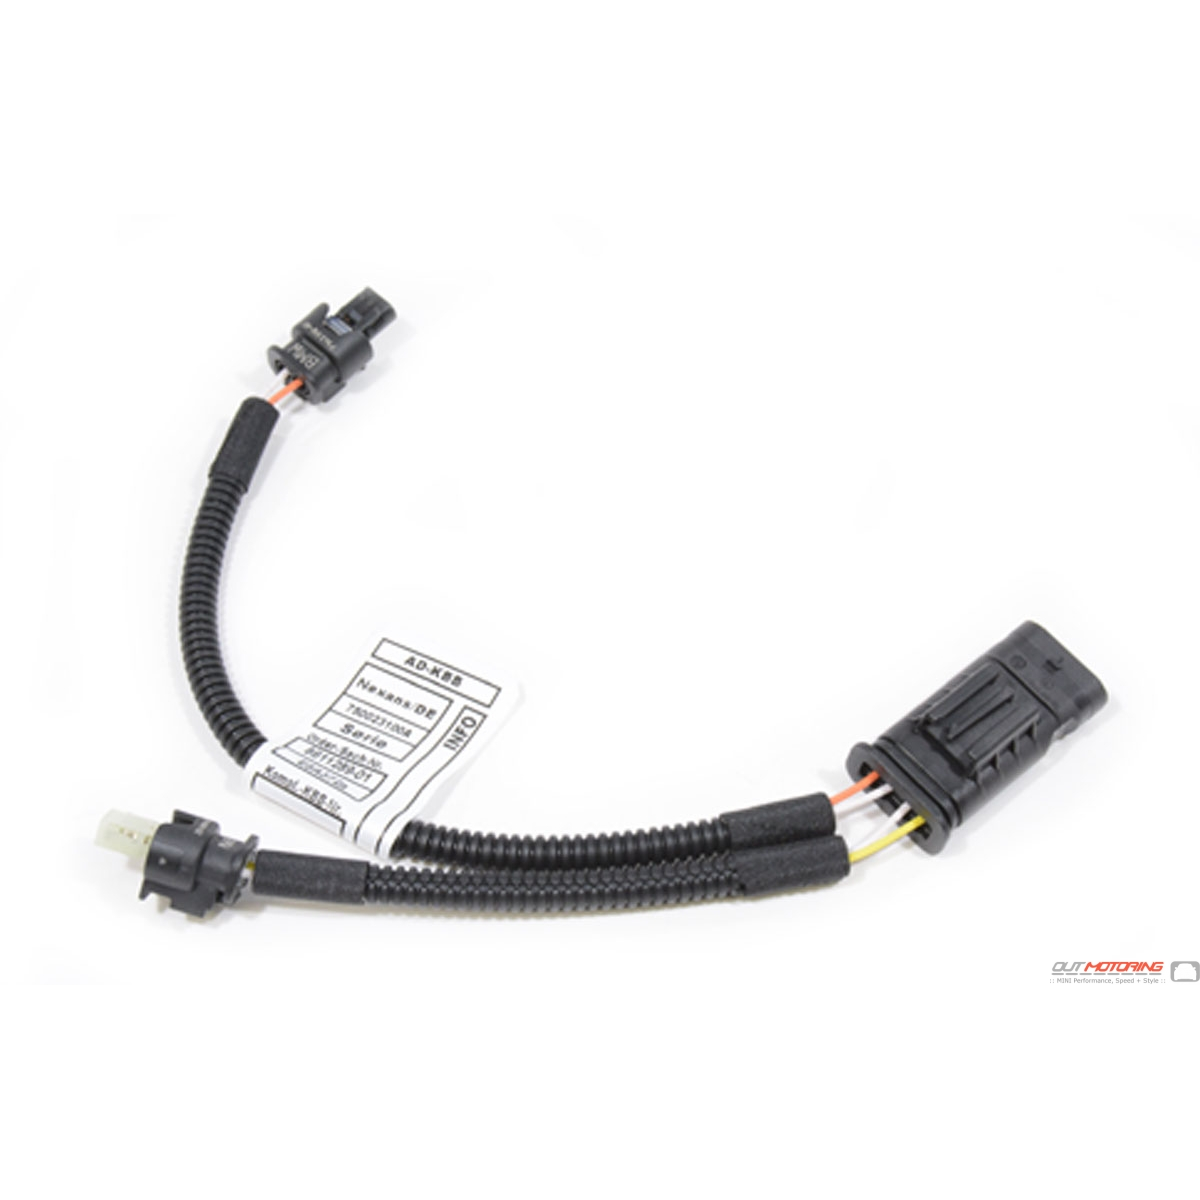 hight resolution of 12518611289 mini cooper replacement thermostat wiring adapter mini cooper accessories mini cooper parts